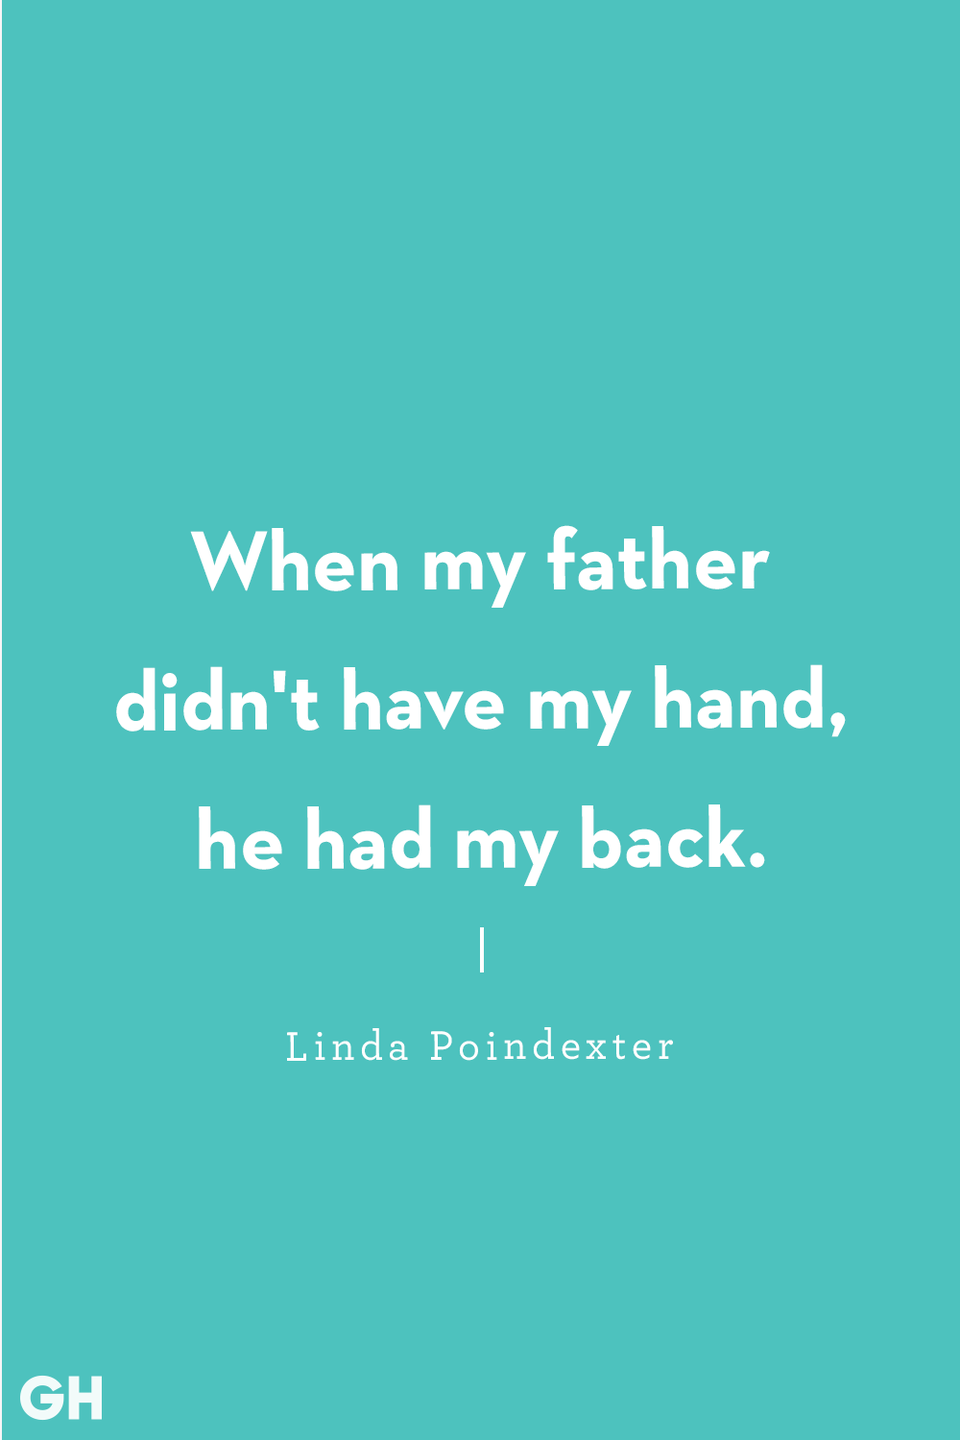 <p>When my father didn't have my hand, he had my back.</p>